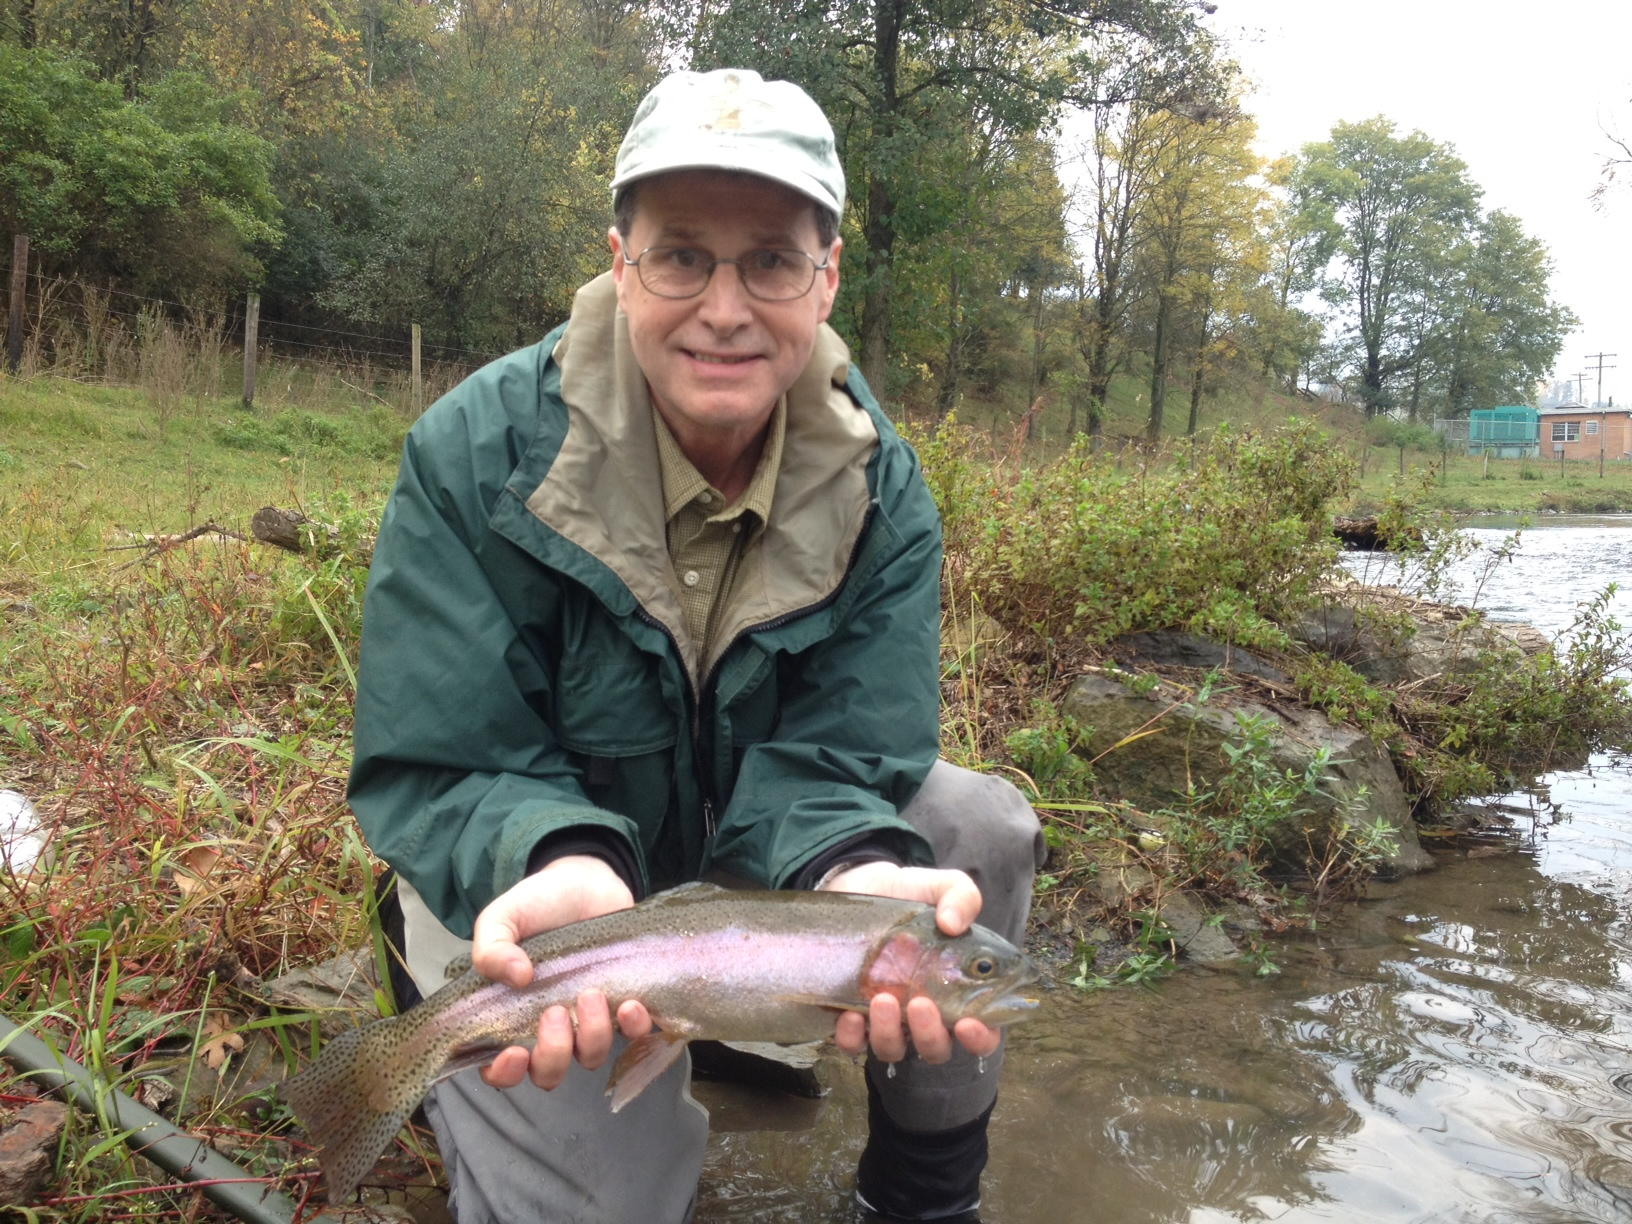 "Kerry Lanza  Hi, I am Kerry Lanza. I live in southeastern Pennsylvania with my wife Barbara. Our home is about an hour drive northwest of Philadelphia in rural ""Pennsylvania Dutch"" country. Growing up in the country, we had plenty of opportunity to fish, for anything, and anywhere. Having found fly fishing over 30 years ago, I find it a great way to connect with the wildness of the place. Fly fishing is now my true passion. For me, teaching is my way of giving back to a sport that has given me so much. Passing the passion to another generation helps to preserve trout fisheries for future generations."